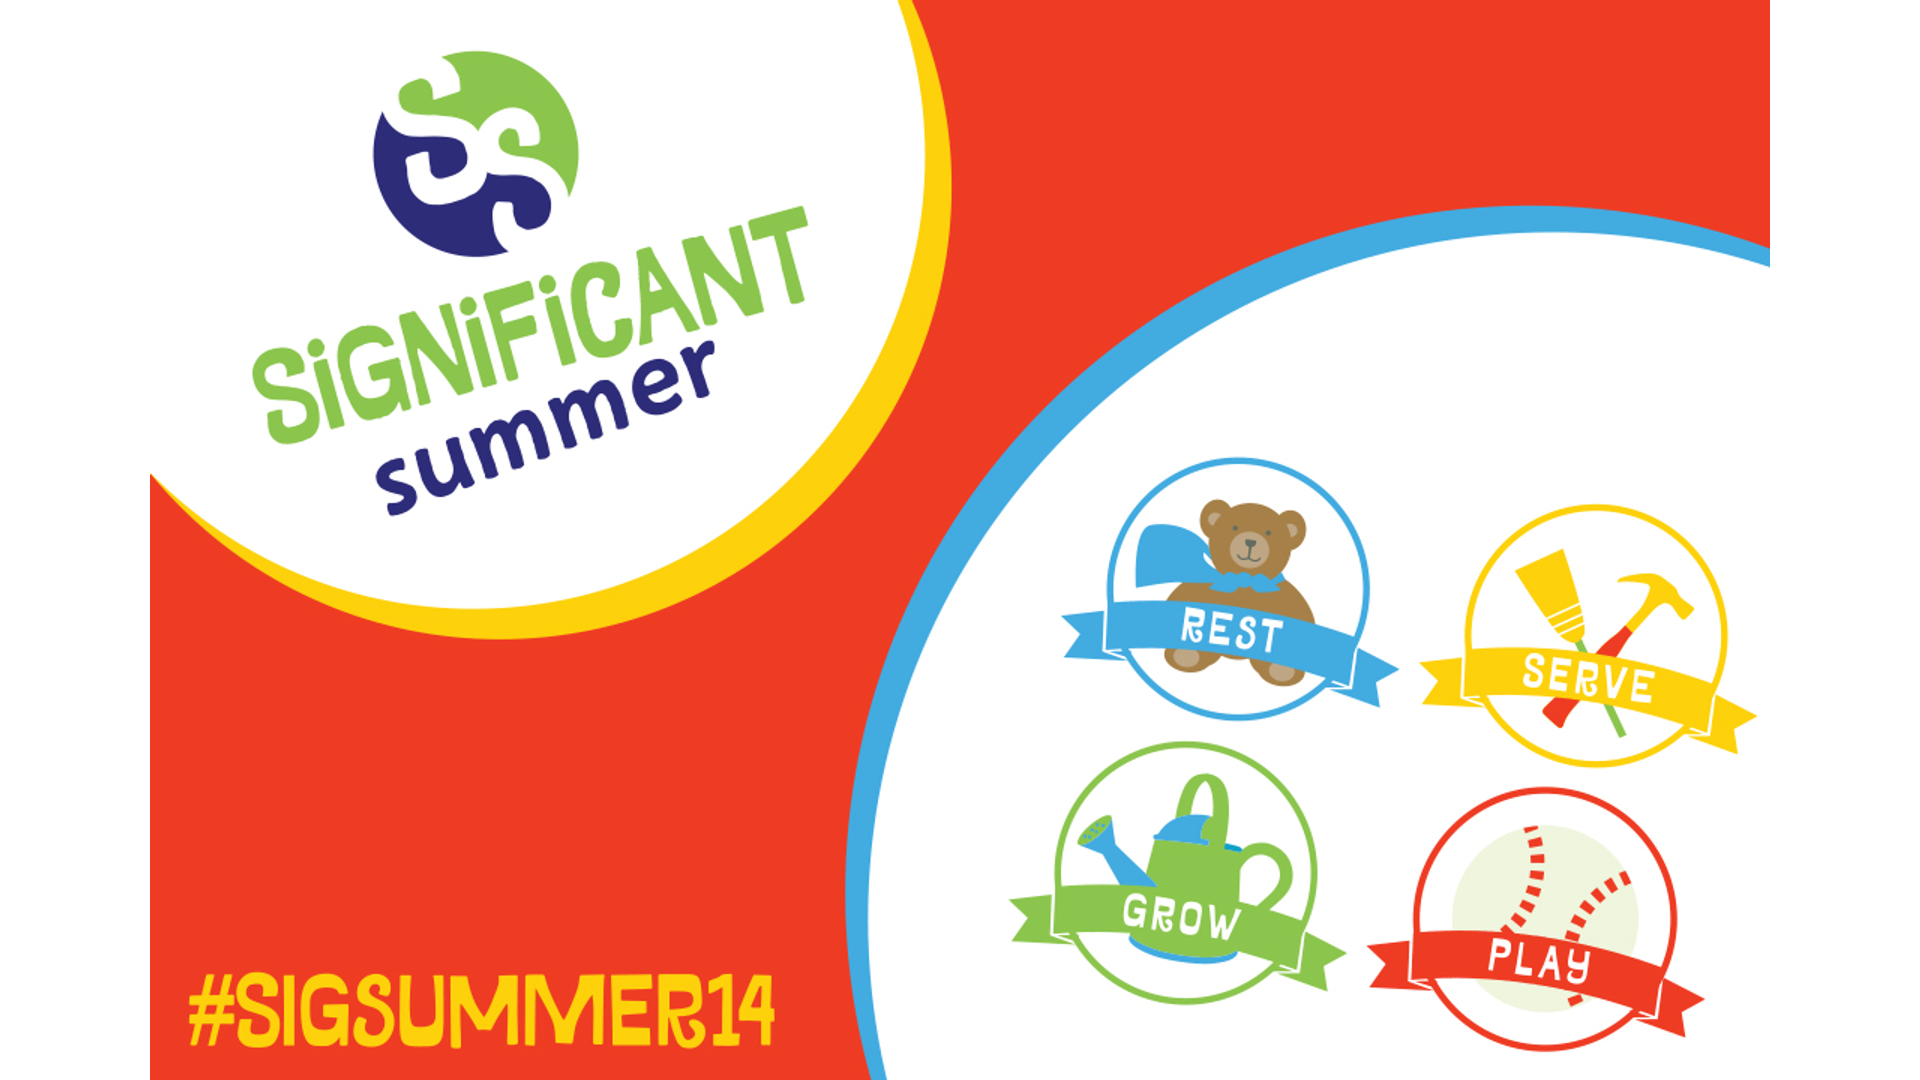 Significant Summer 2014: A Family Mission Hero Image